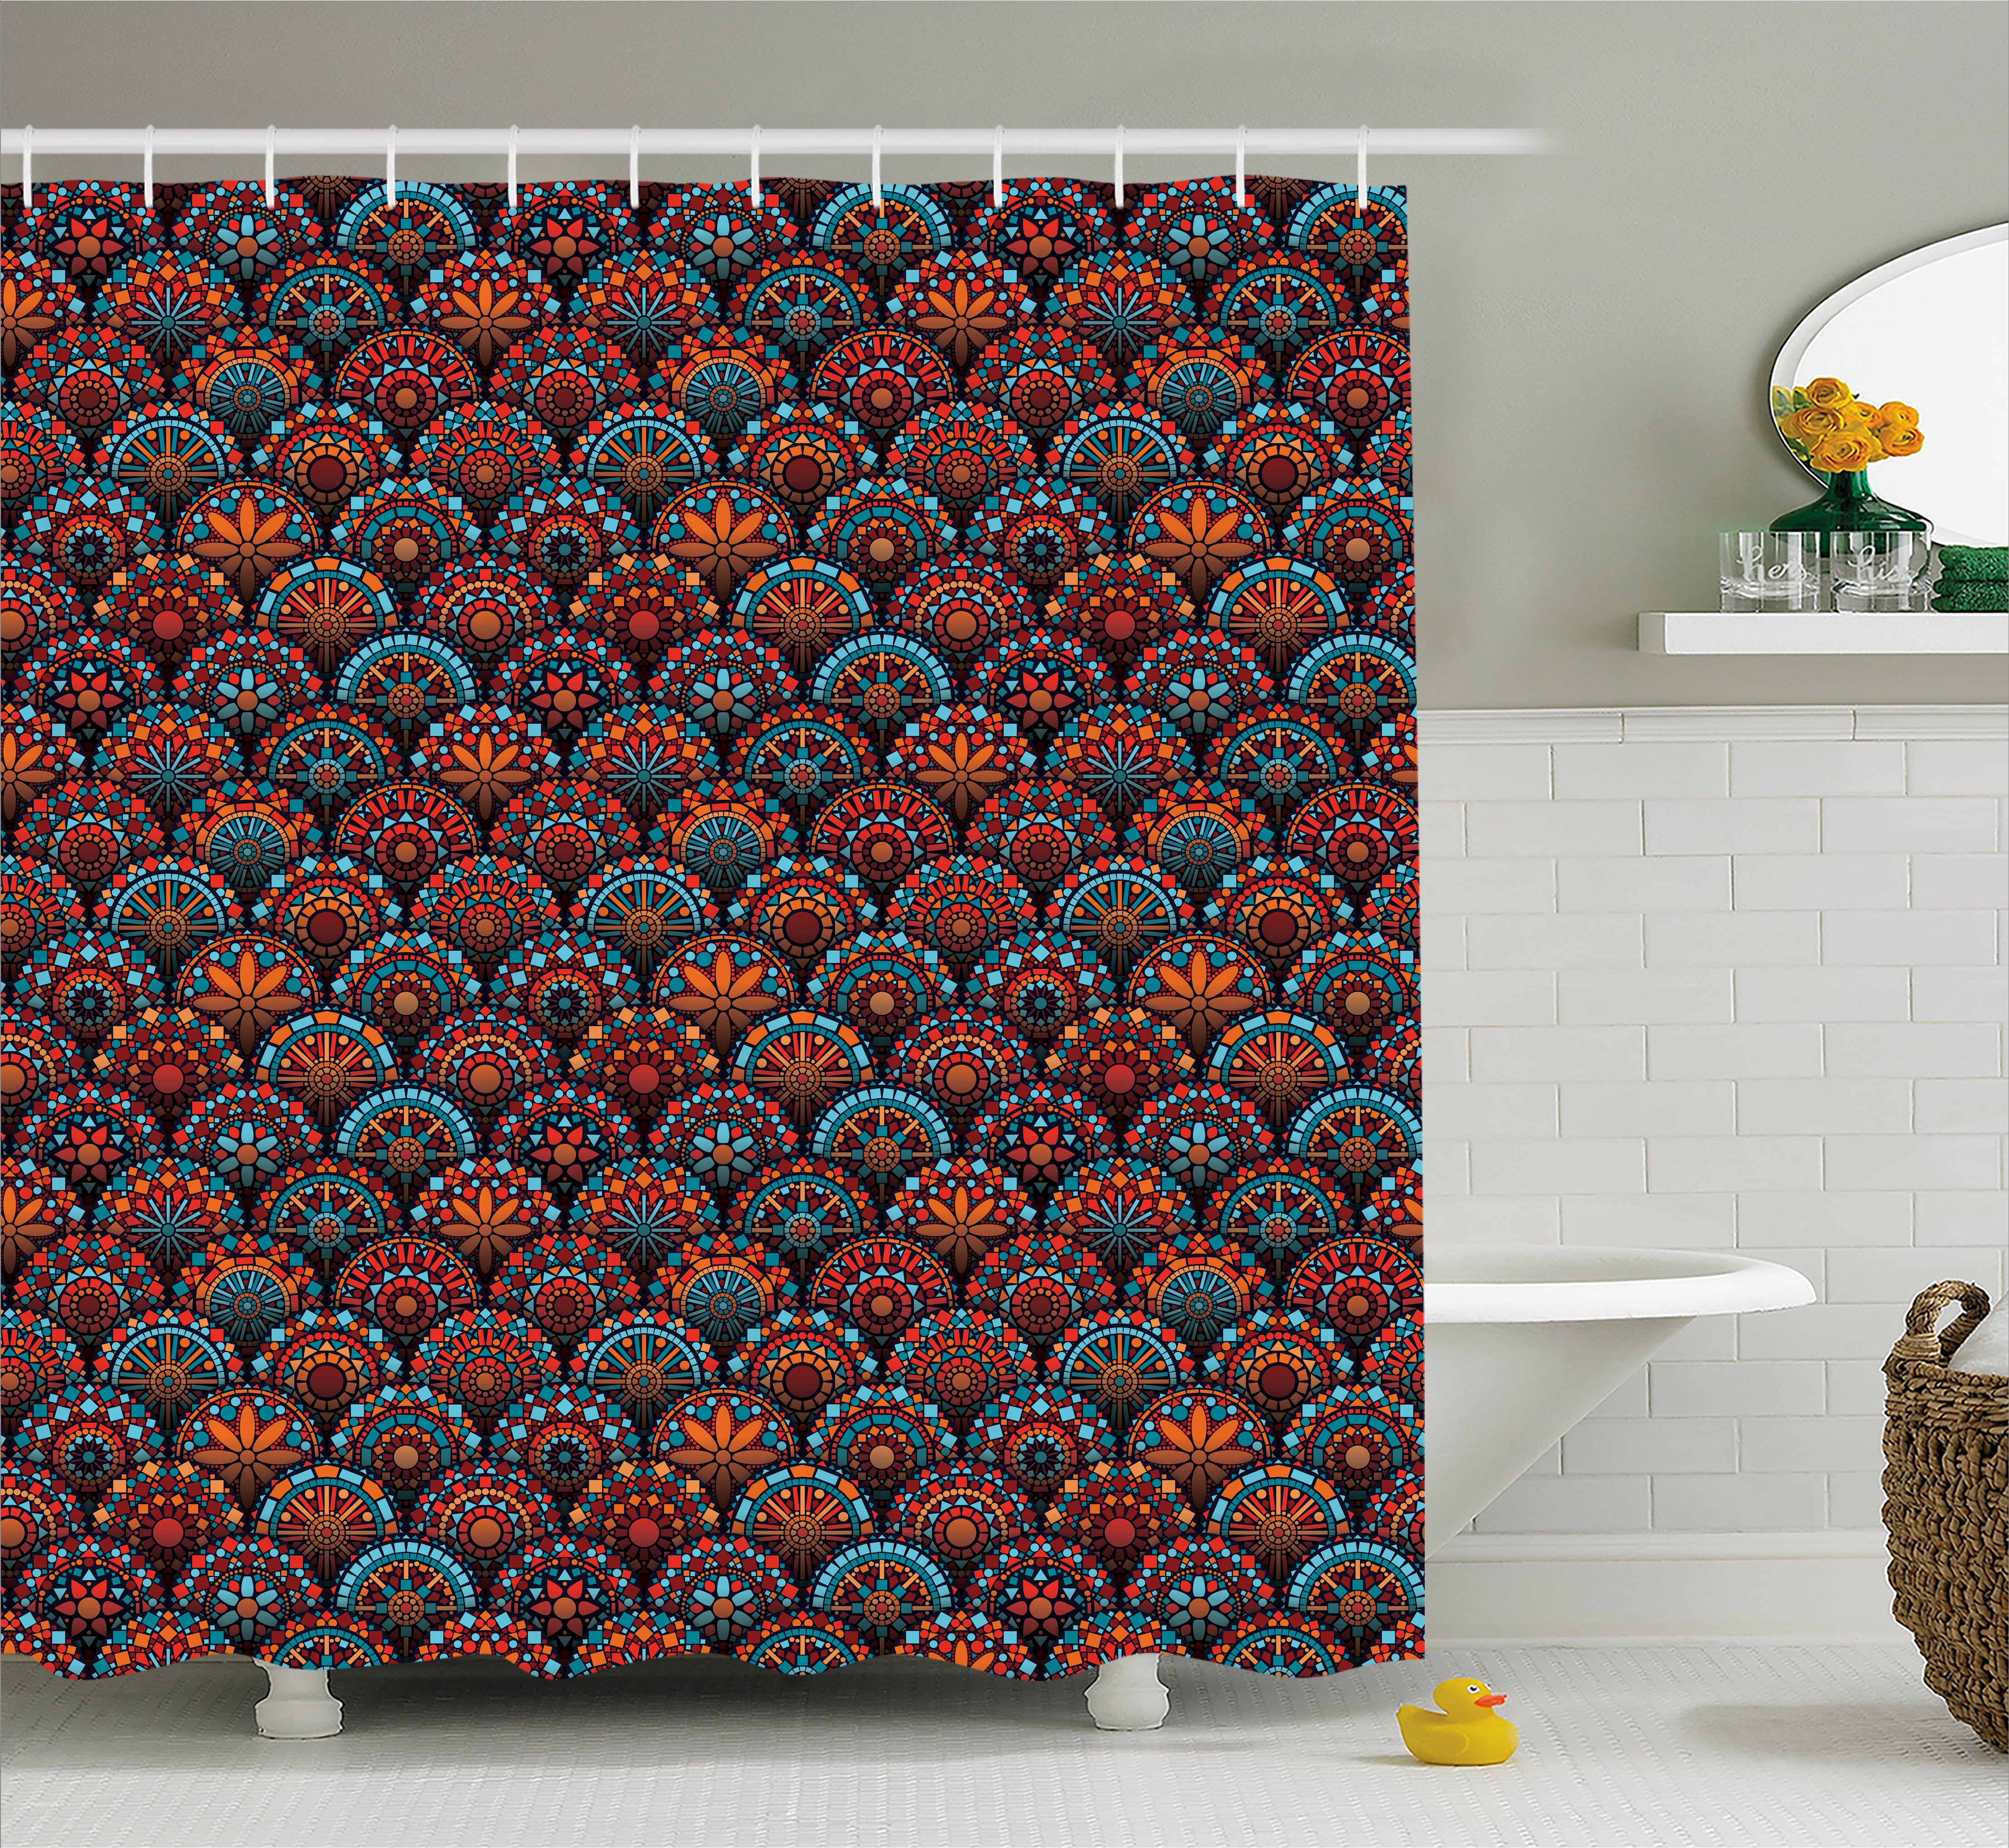 Moroccan Shower Curtain, Circles Pattern Mandala Inspired Floral Arrangements Geometric Rectangles, Fabric Bathroom Set with Hooks, 69W X 75L Inches Long, Aqua Orange Ruby, by Ambesonne